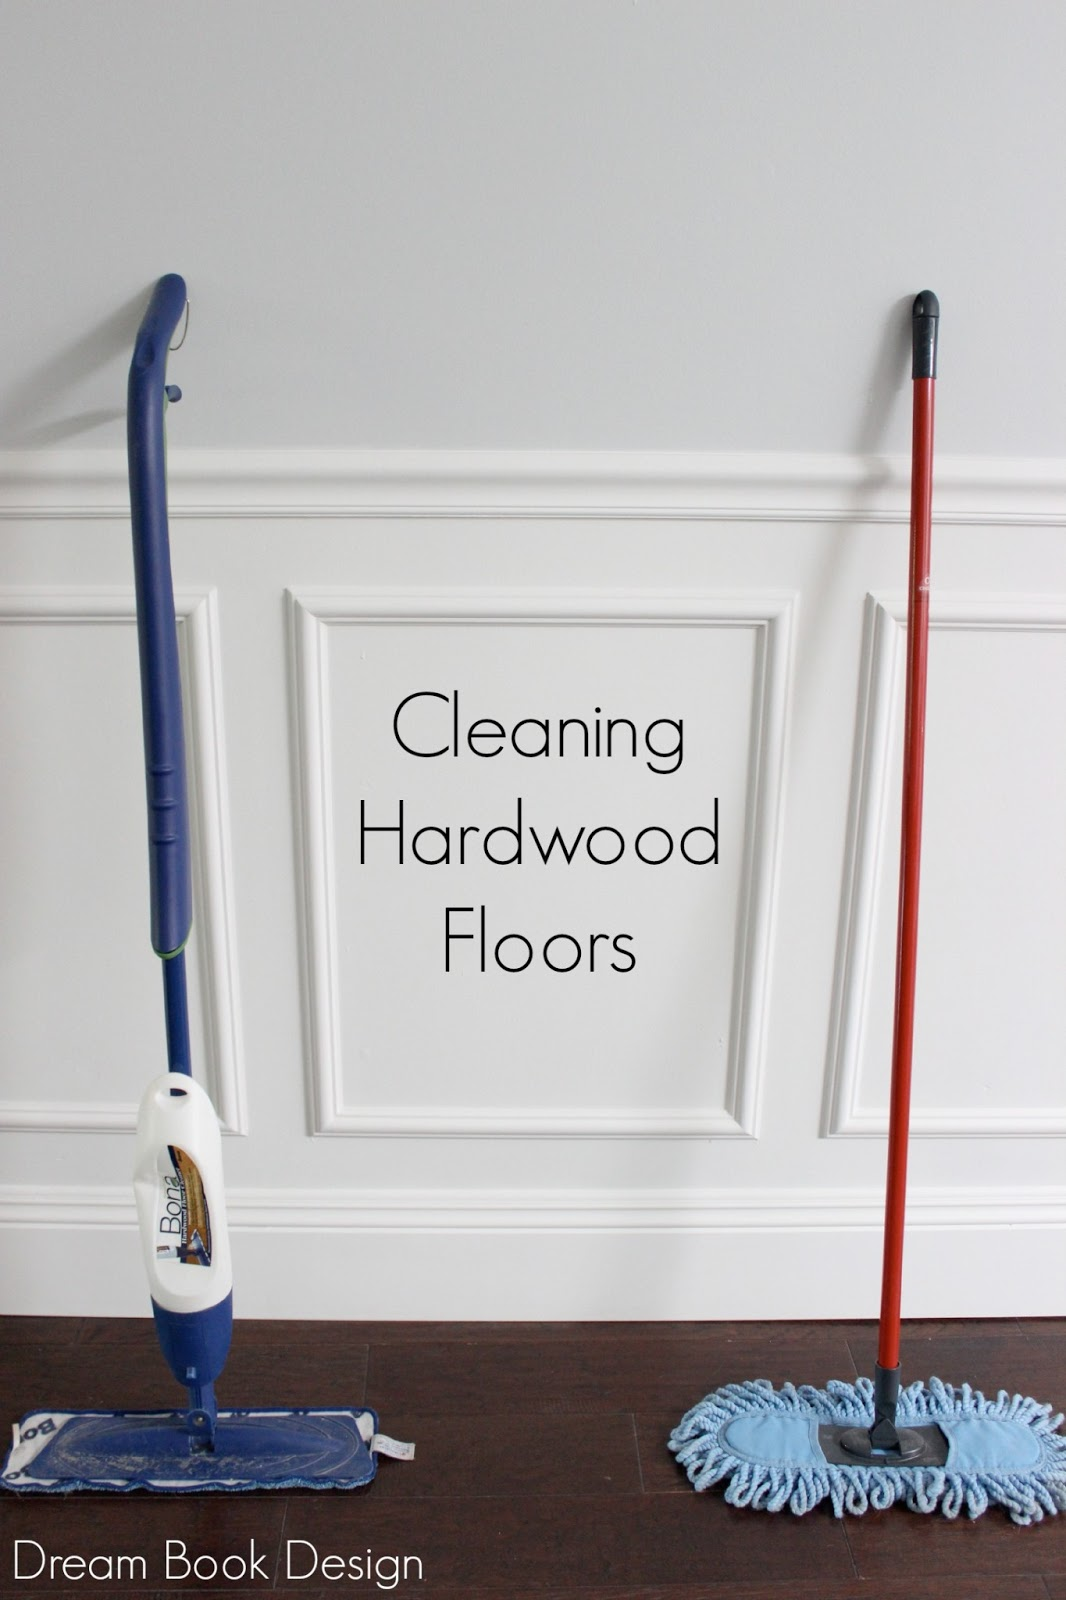 The best way to clean hardwood floors dream book design for Hardwood floors cleaner